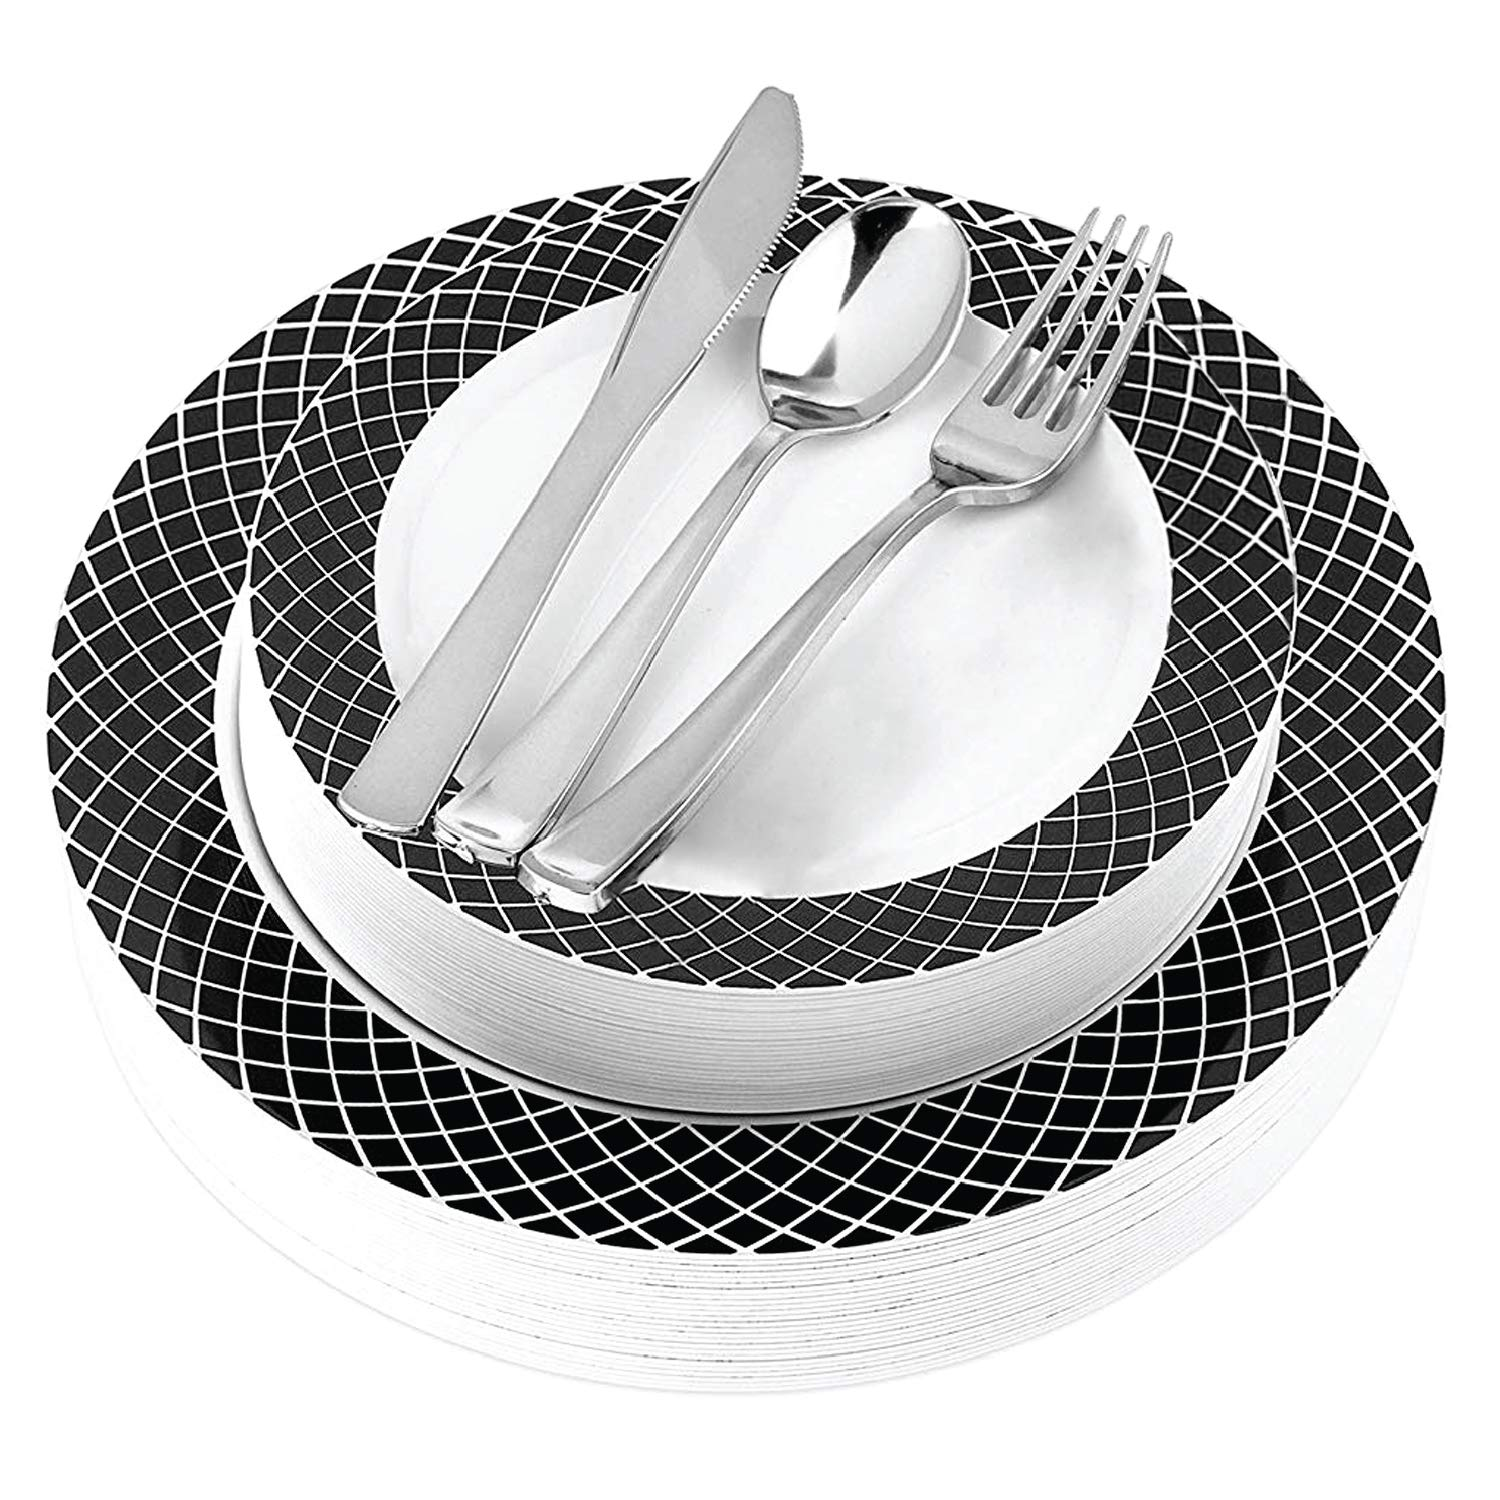 Black and White Plastic Dinnerware (125-Piece) Plastic Plates, Plastic Forks, Plastic Knives, Plastic Spoons - Service for 25 Guests Place Setting for Wedding, Party, Baby Shower, Birthday, Holiday